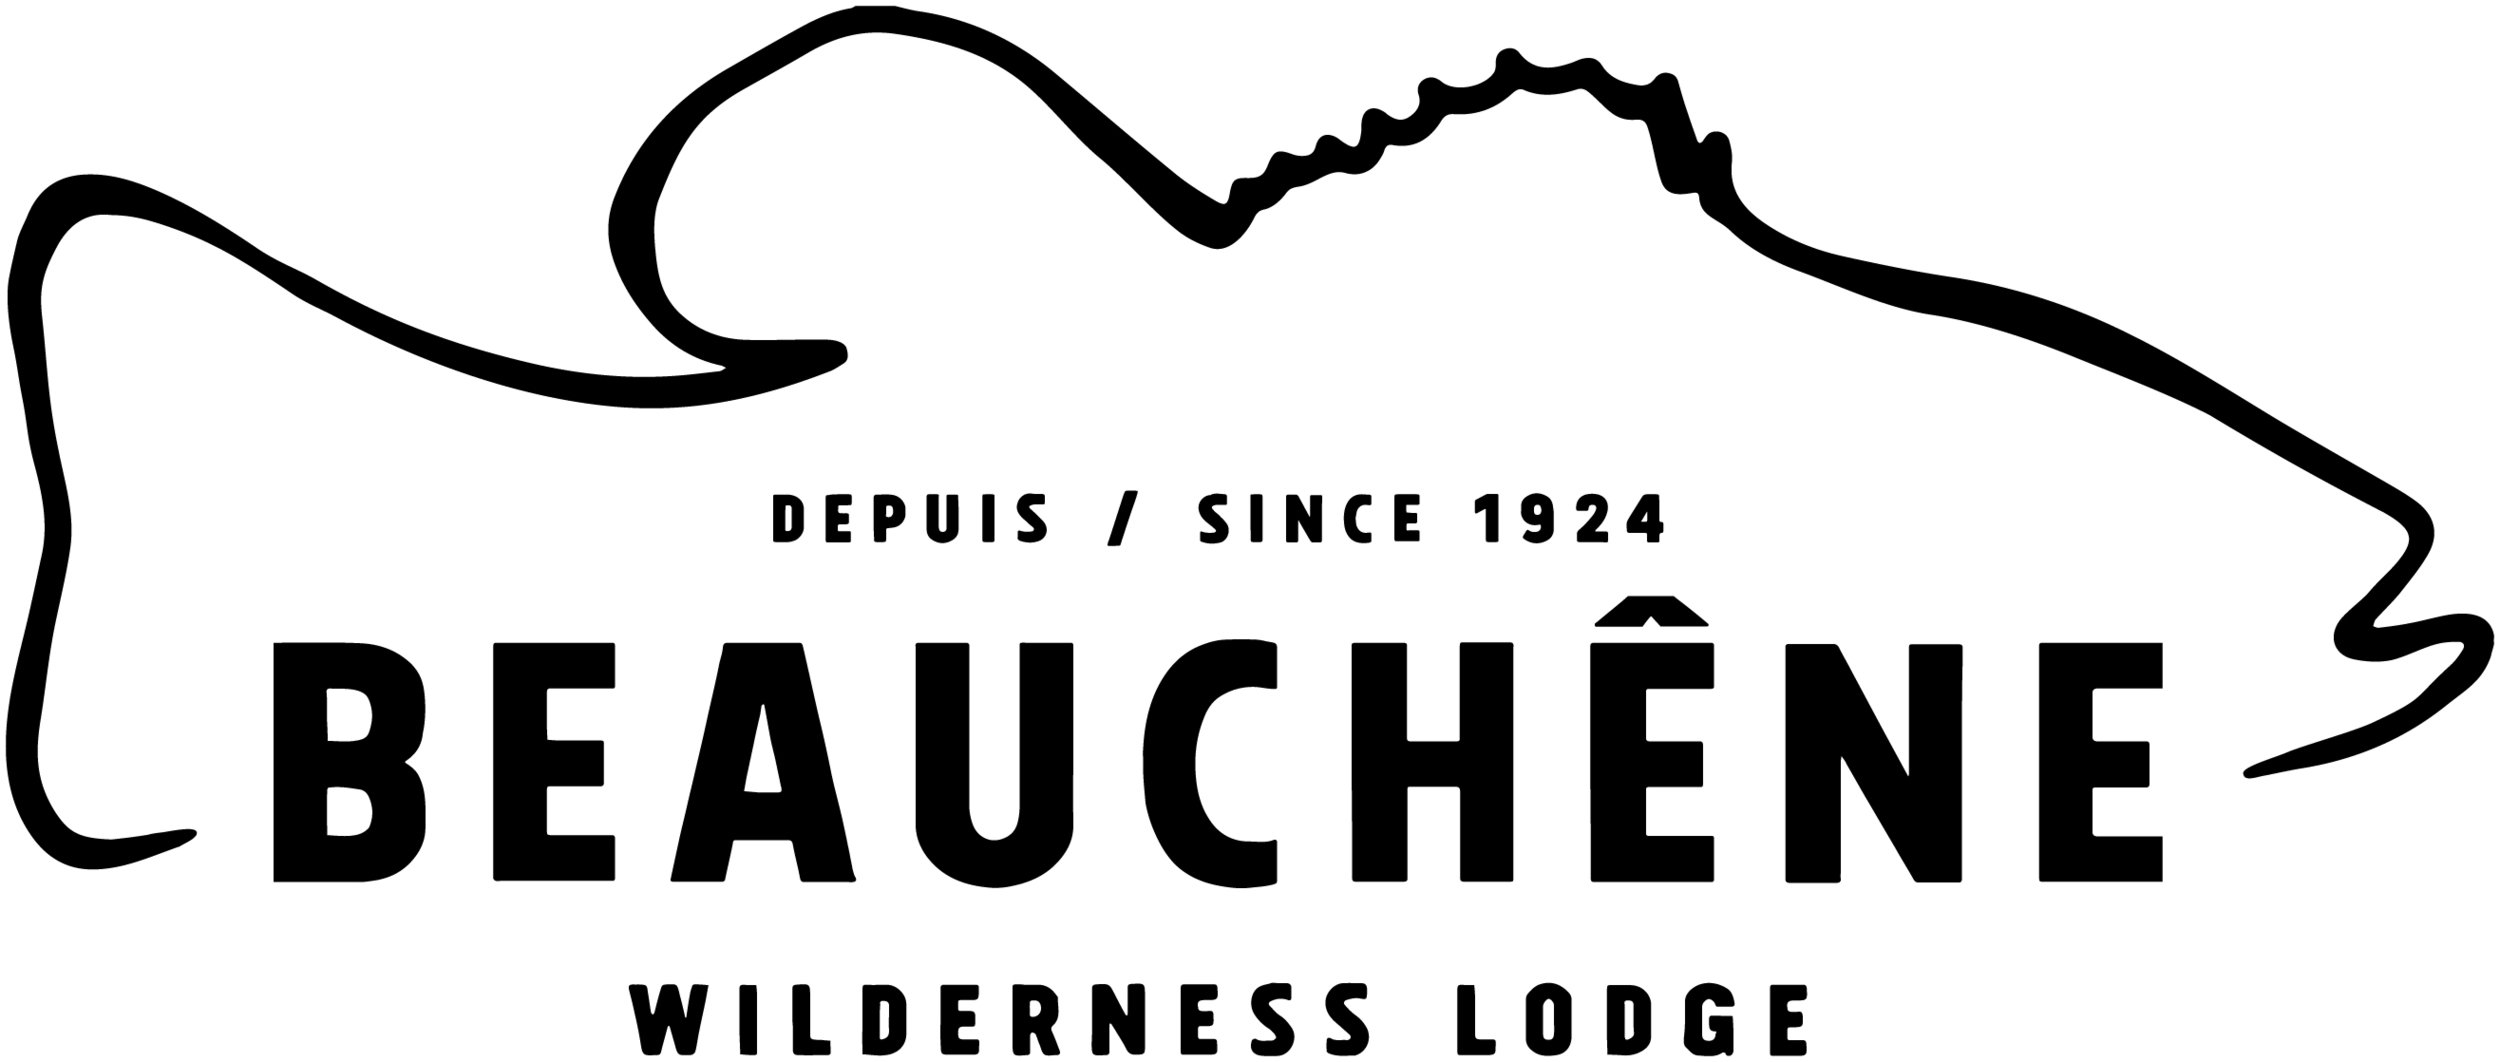 Beauchene Wilderness Lodge, the location of Wellhaven's active wellness experience.